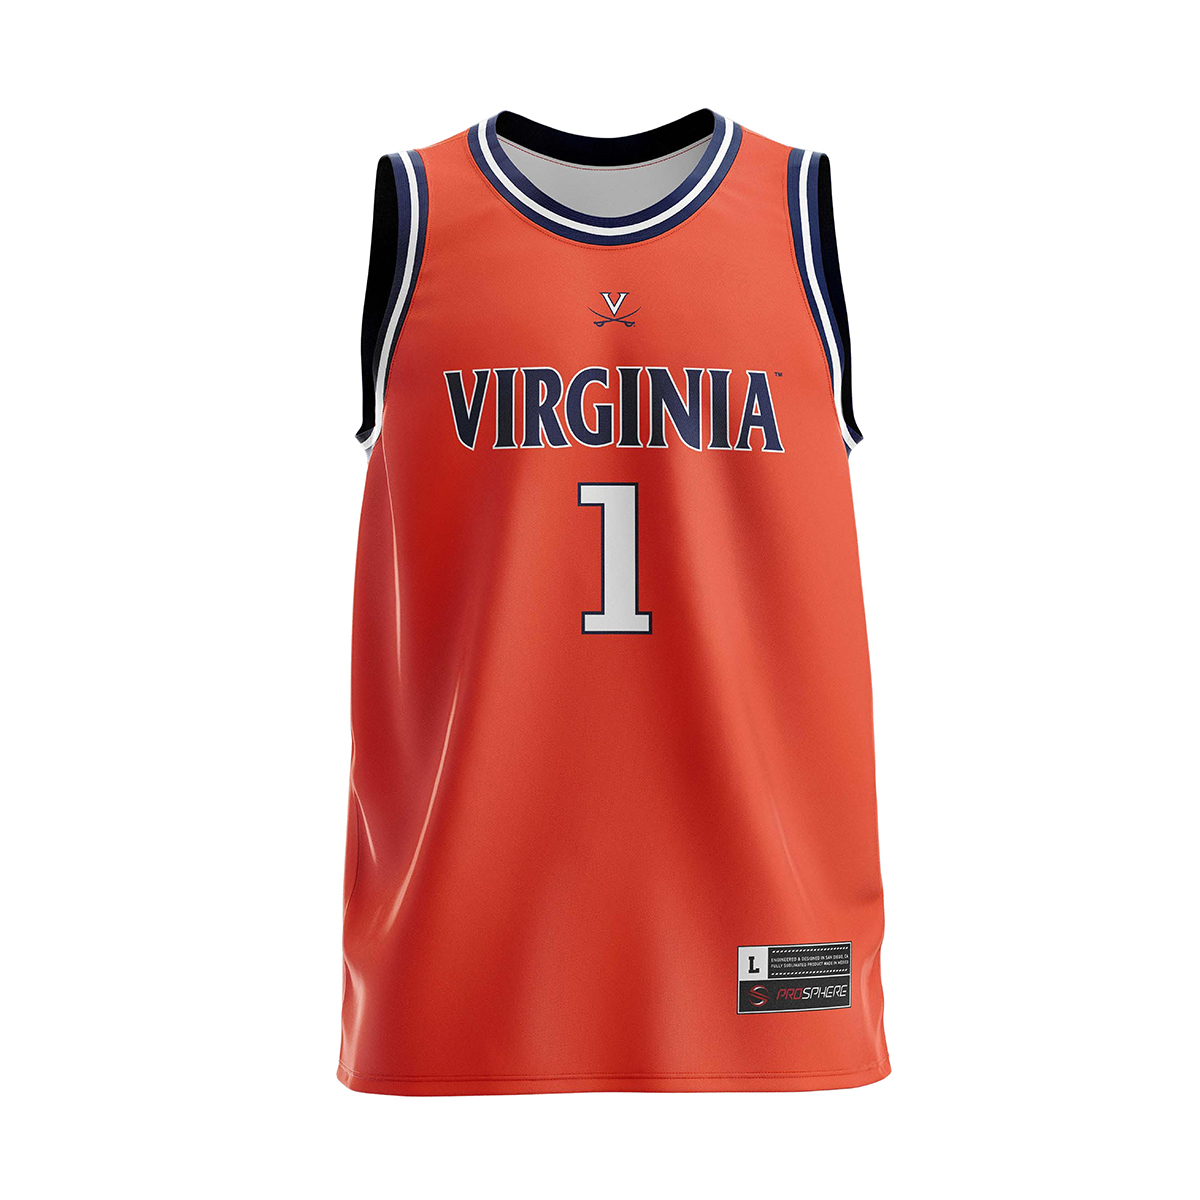 UVA 2019 #1 National Champions Adult Orange Jersey